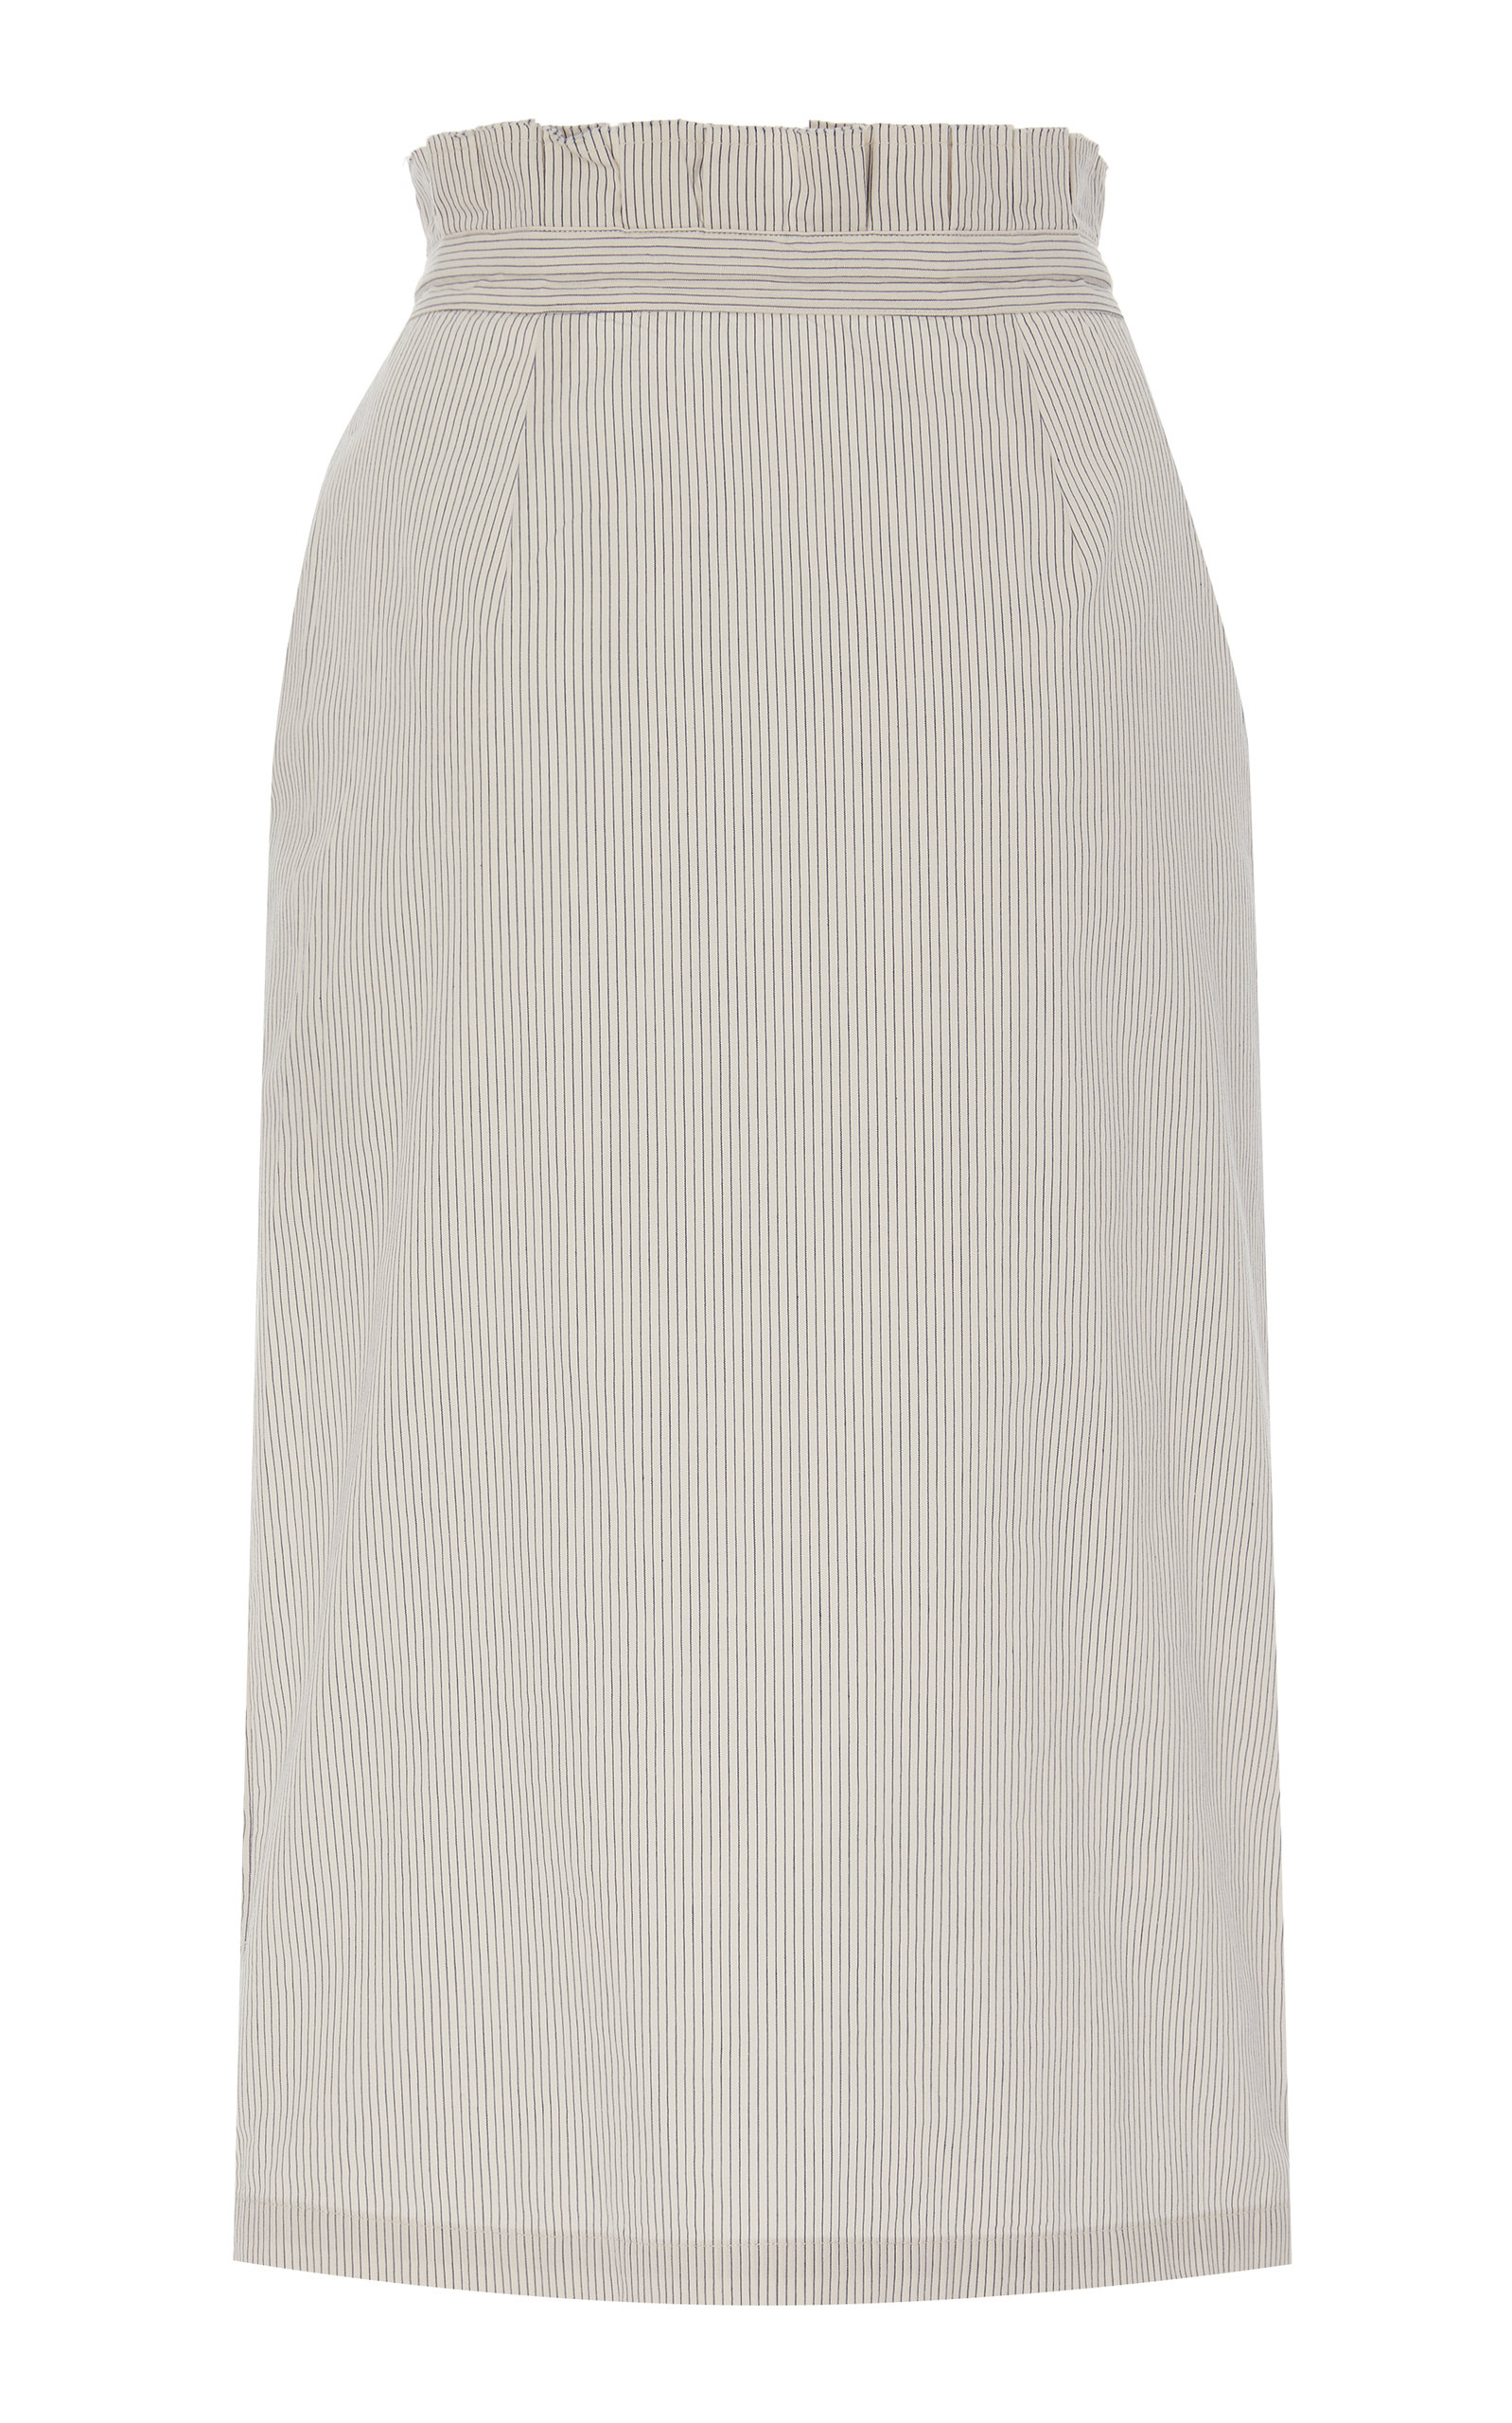 Also CORINNE TIE-DETAILED COTTON-POPLIN MIDI SKIRT